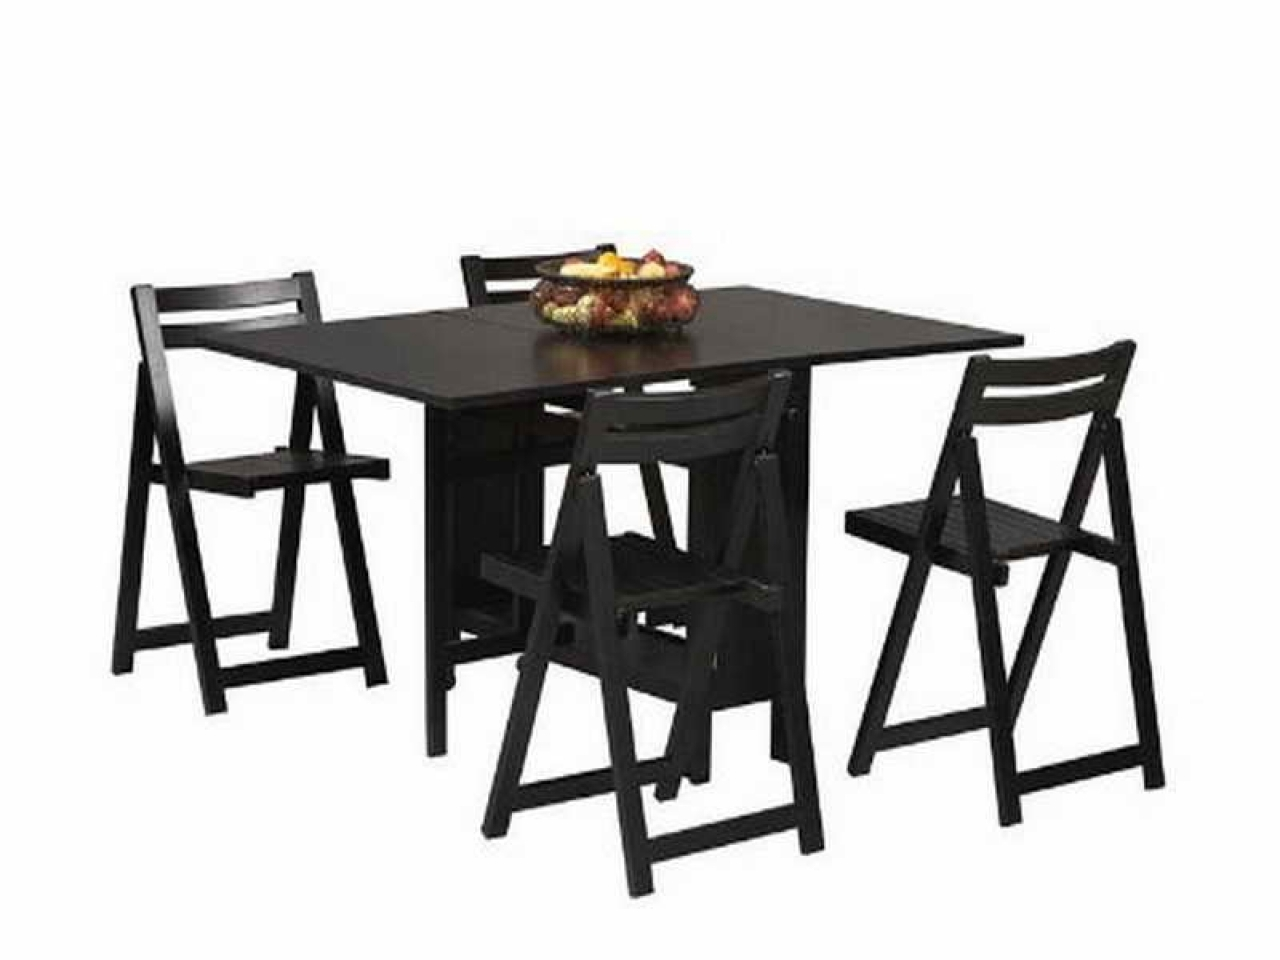 Most Current Black Dining Table With Chairs Folding Dining Table And Outdoor Throughout Black Folding Dining Tables And Chairs (View 15 of 25)